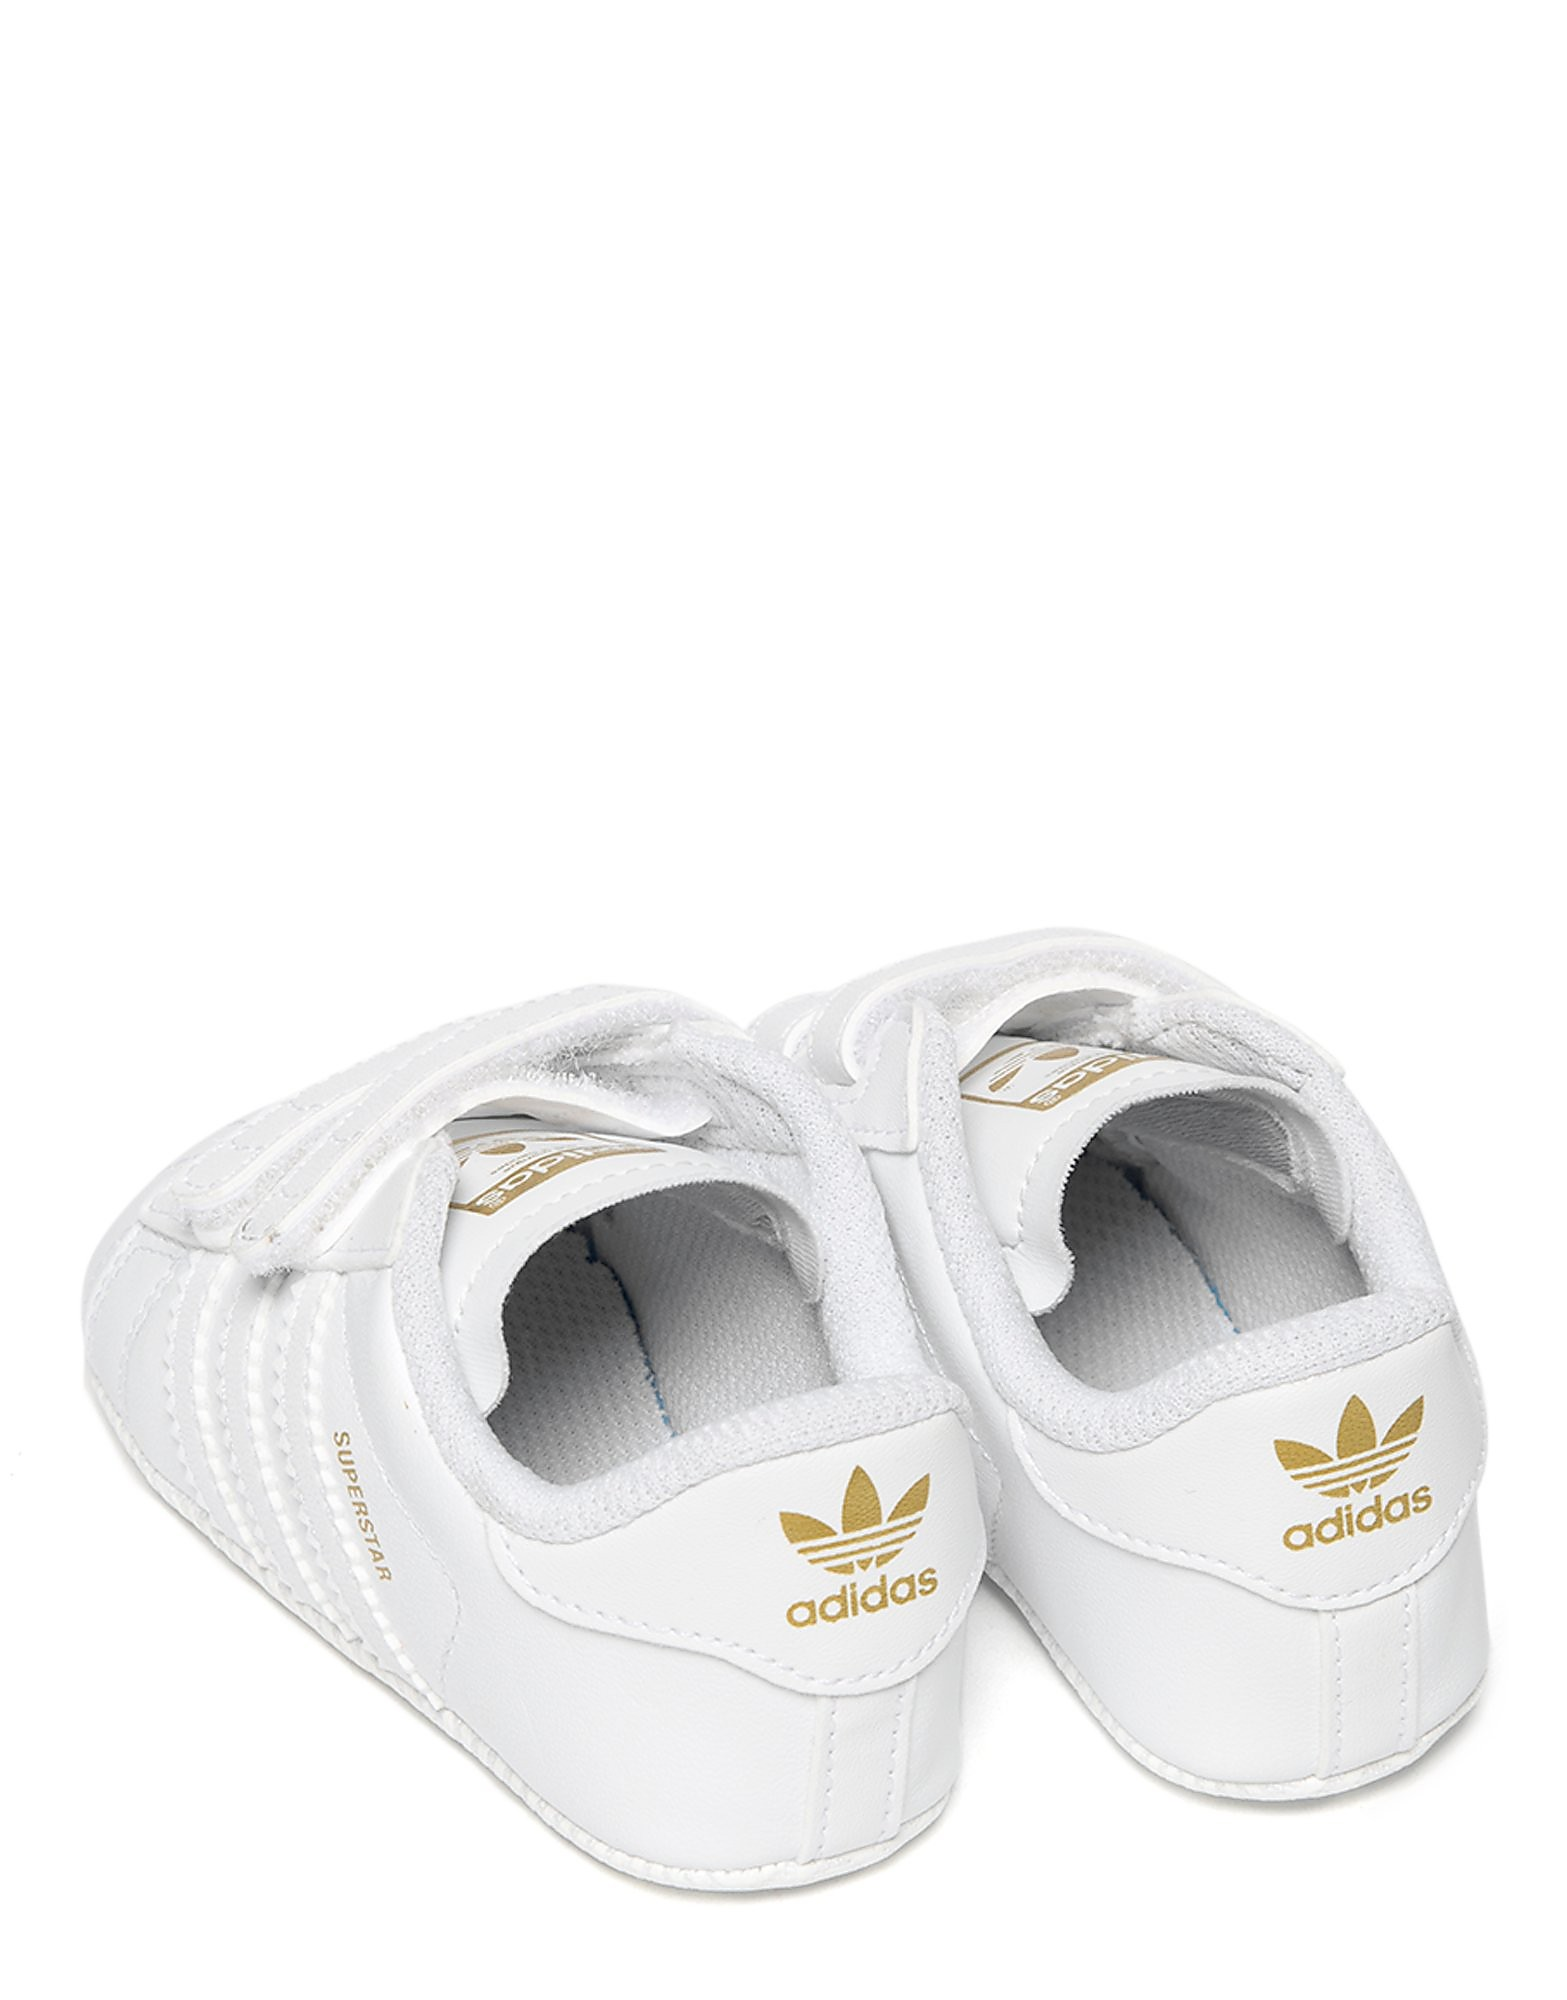 adidas Originals Superstar Crib pour bébé